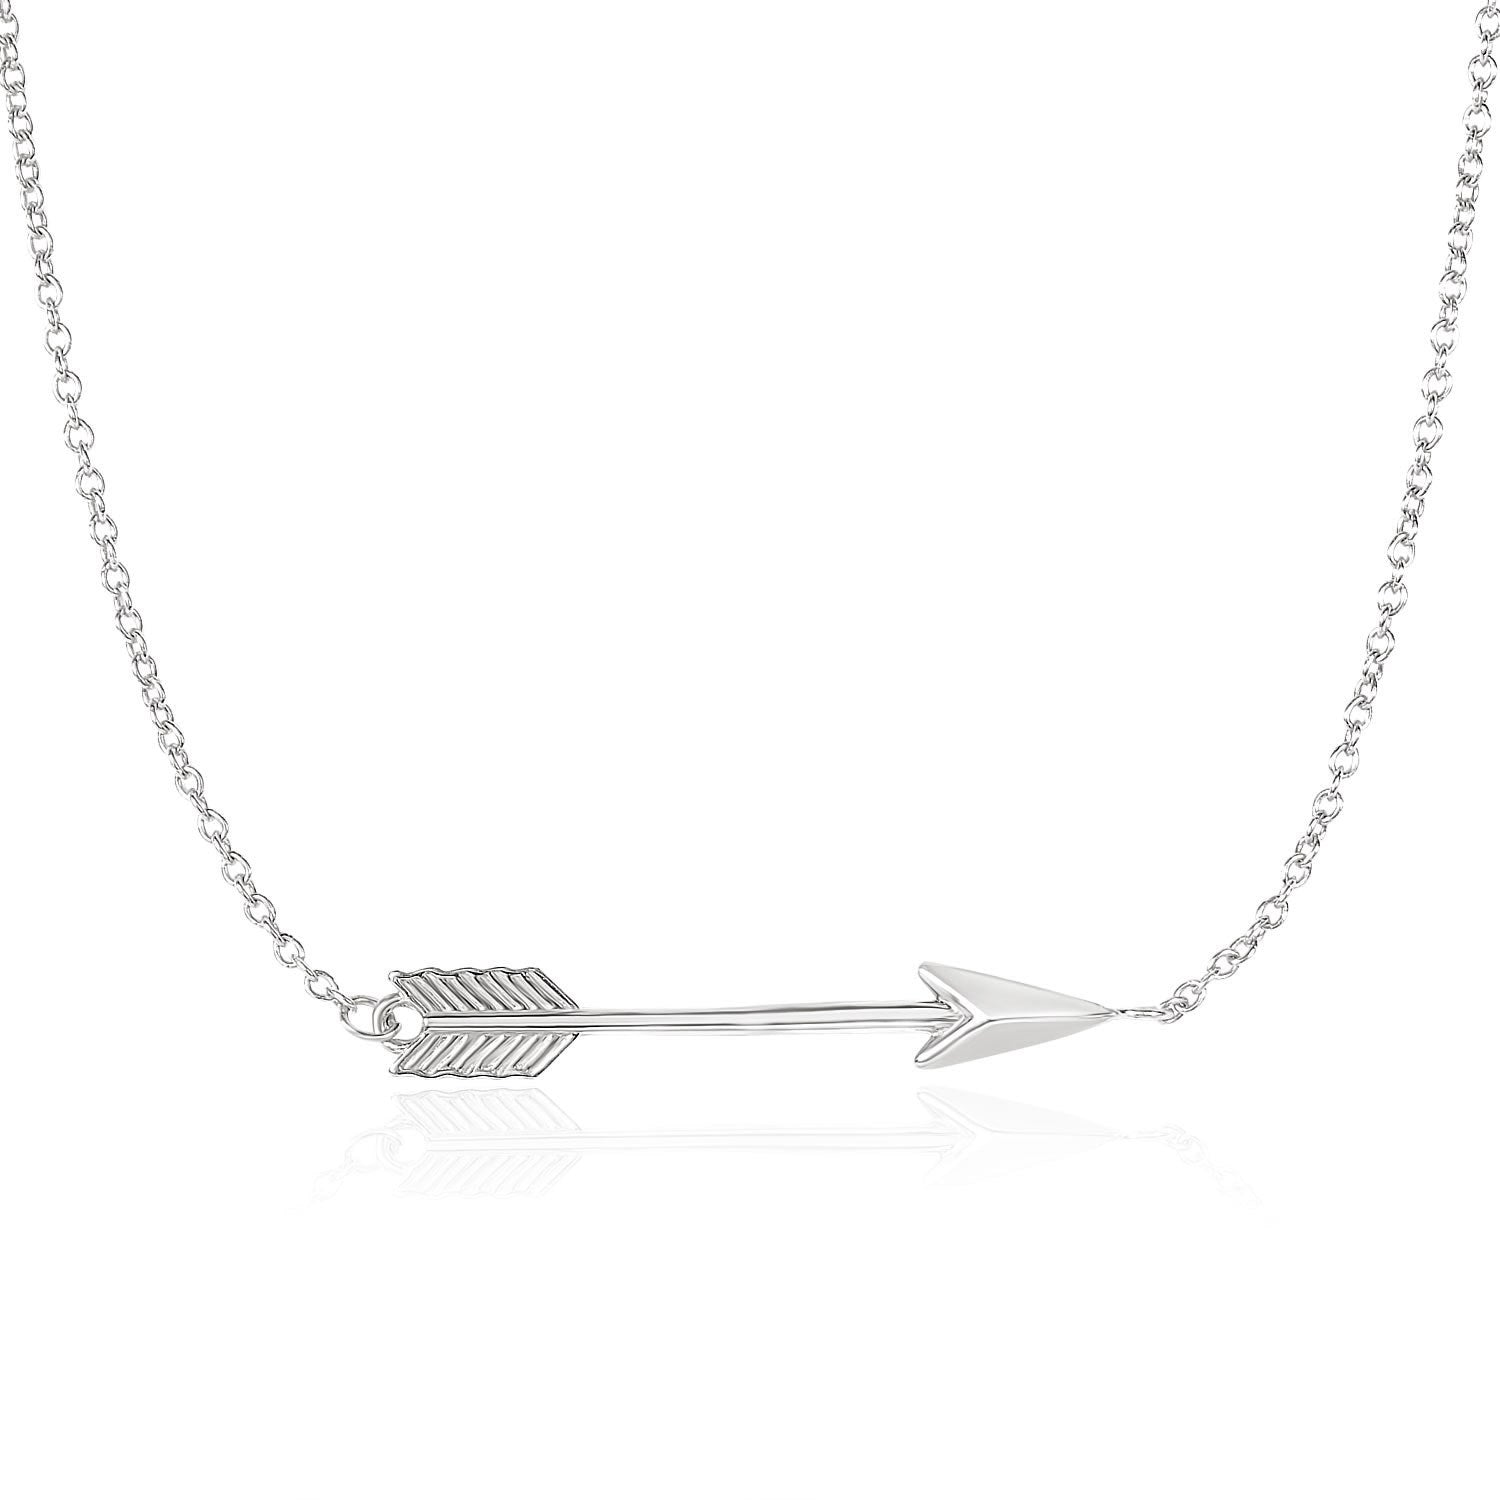 with cross gold brilliant white baguette chain and chains cut diamond pendant